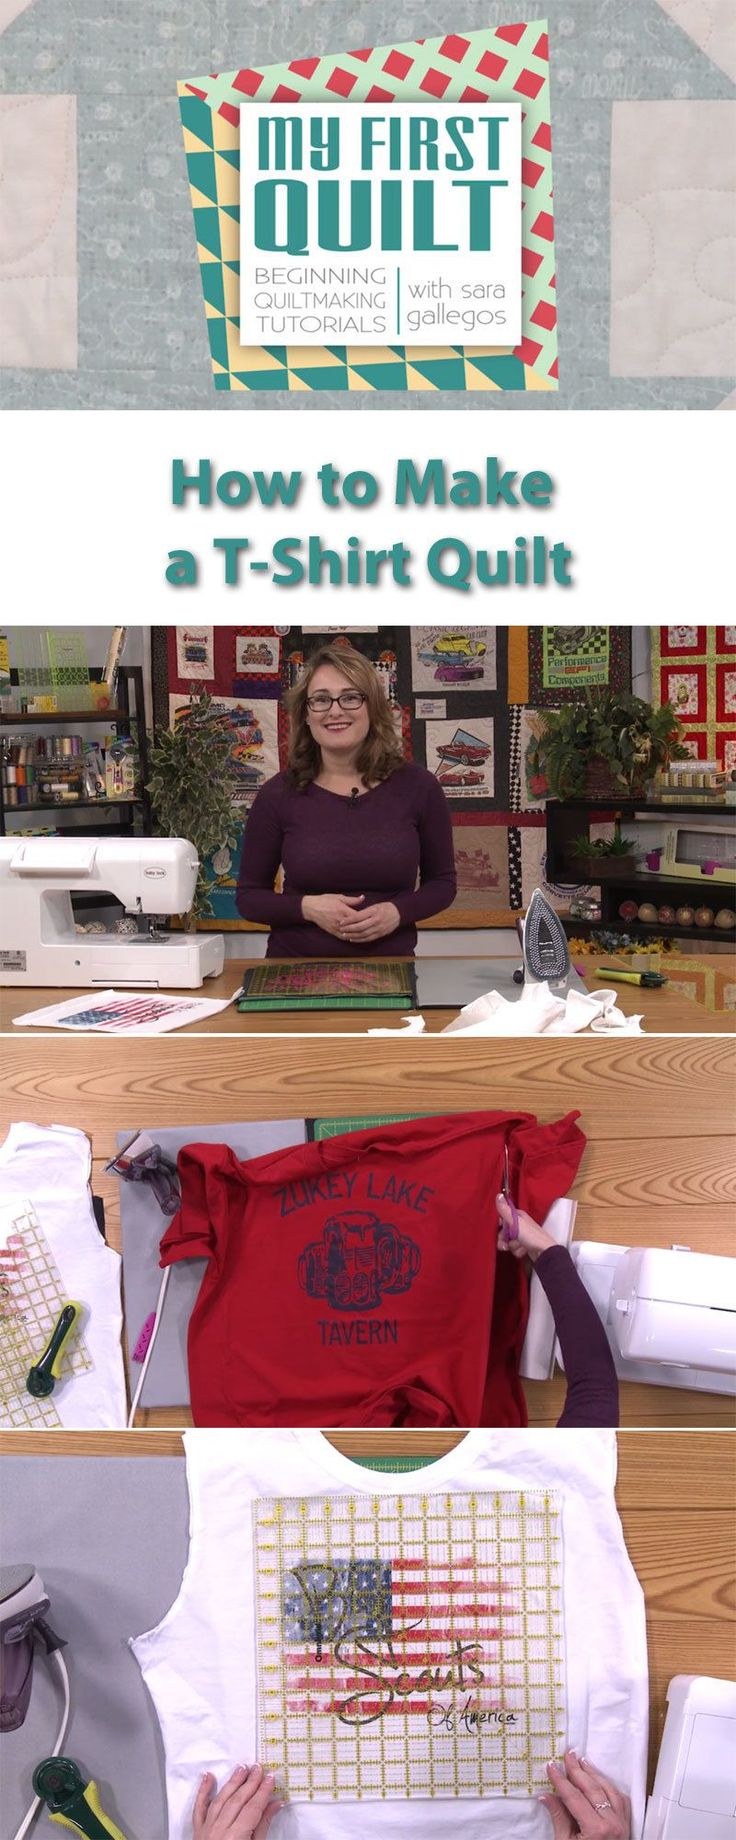 Ready to make a T-shirt quilt? Here's what you need to know before you get started: